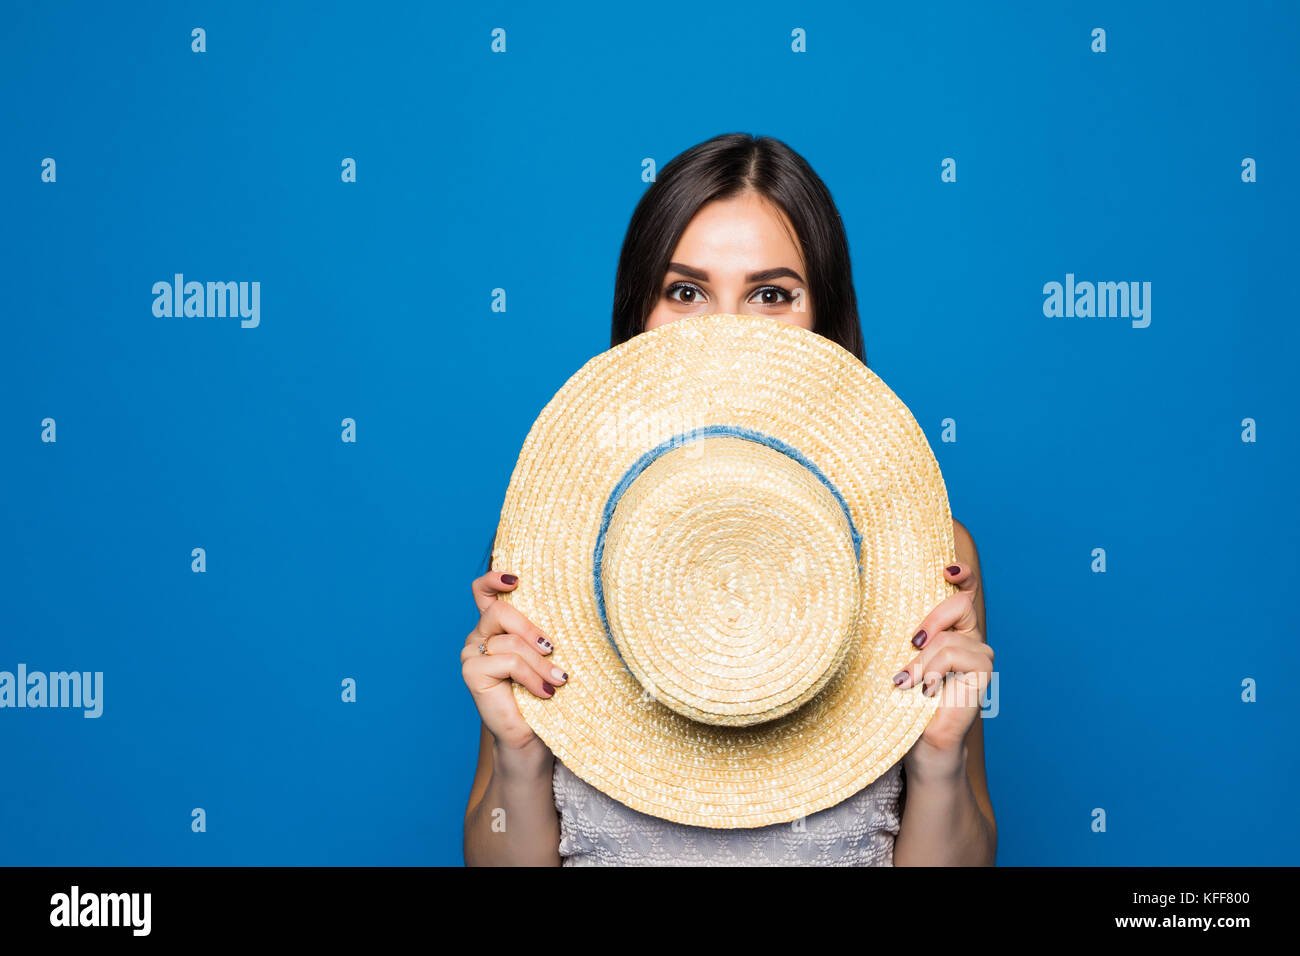 6f97364c860 Portrait of cute woman covering face with round hat on blue Stock ...